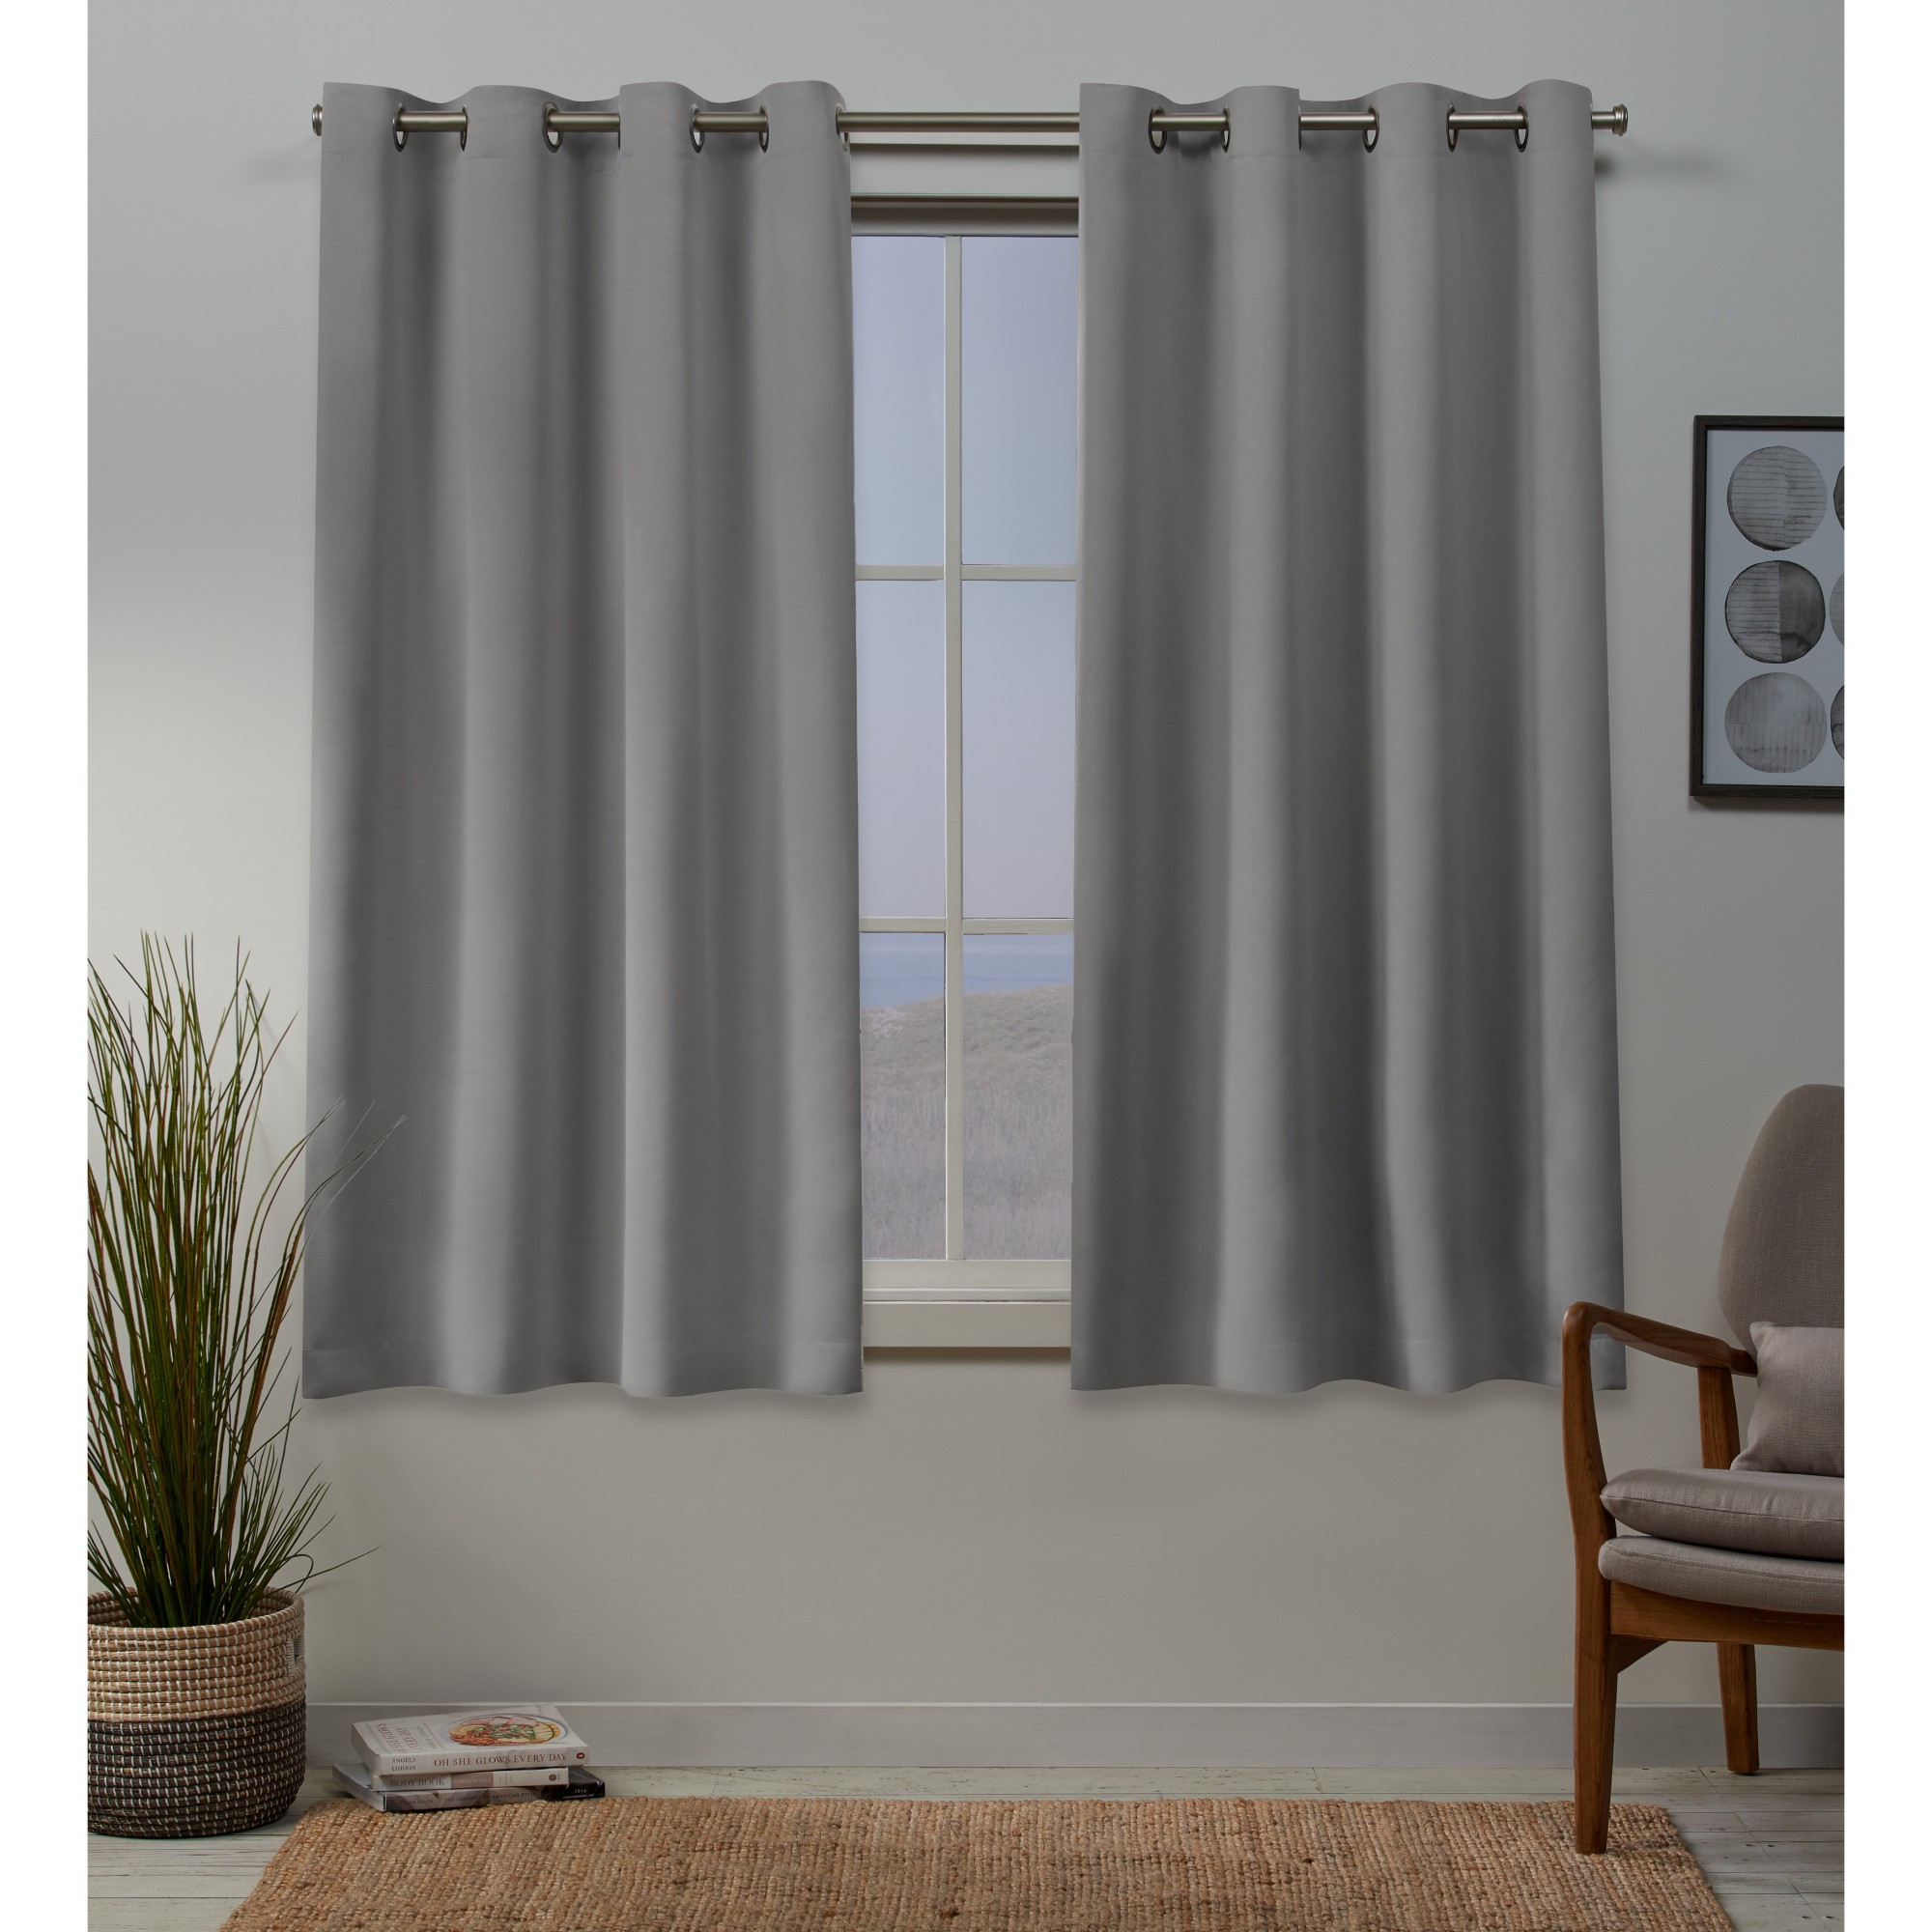 Sateen Woven Blackout Grommet Top Window Curtain Panel Pair With Regard To Woven Blackout Grommet Top Curtain Panel Pairs (View 22 of 30)